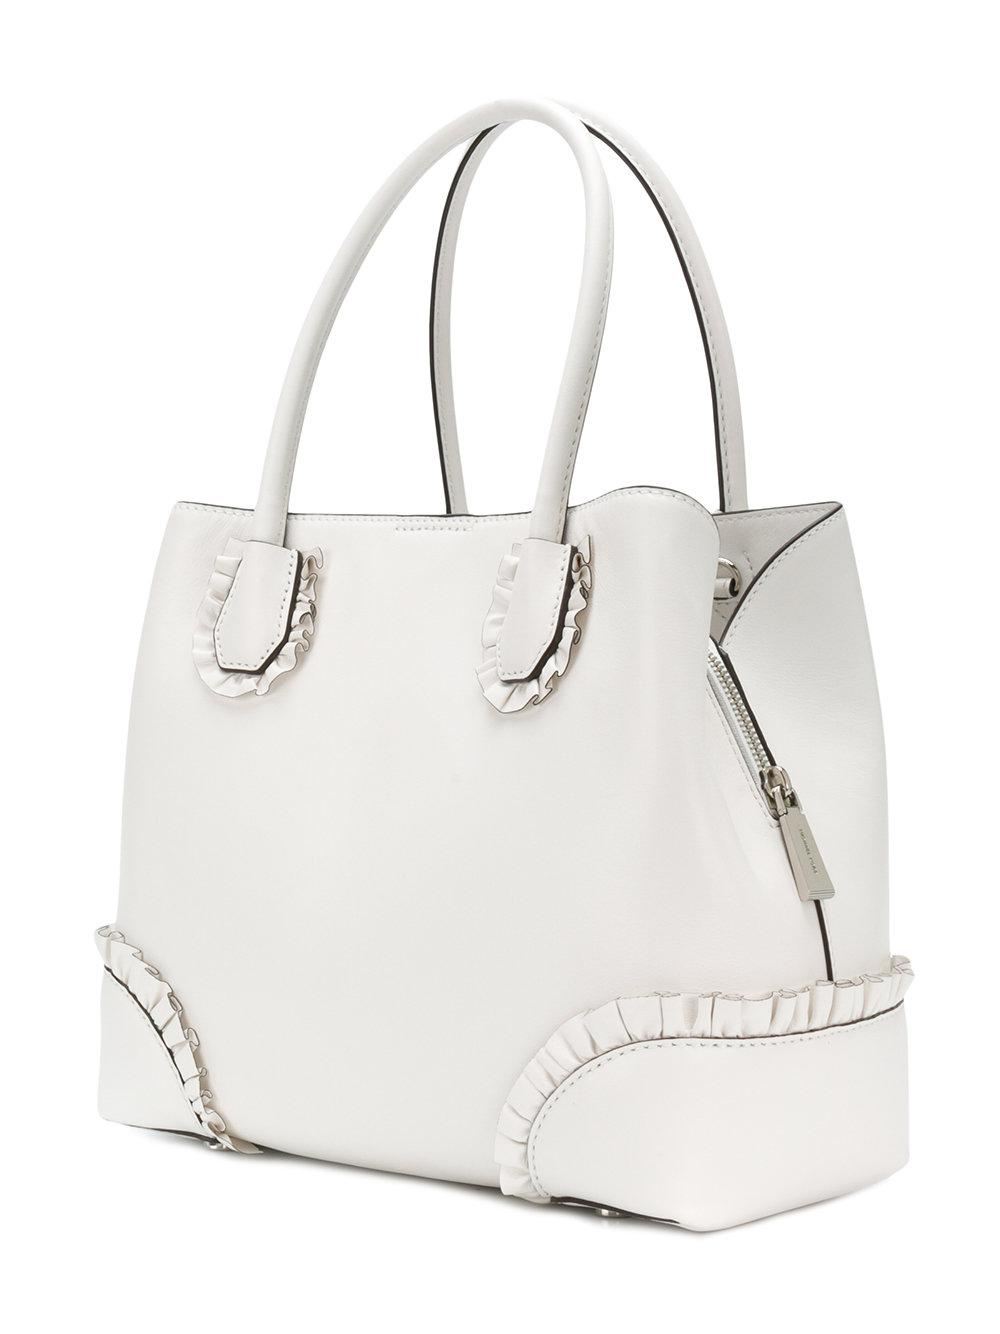 MICHAEL Michael Kors Leather Mercer Gallery Large Tote in White